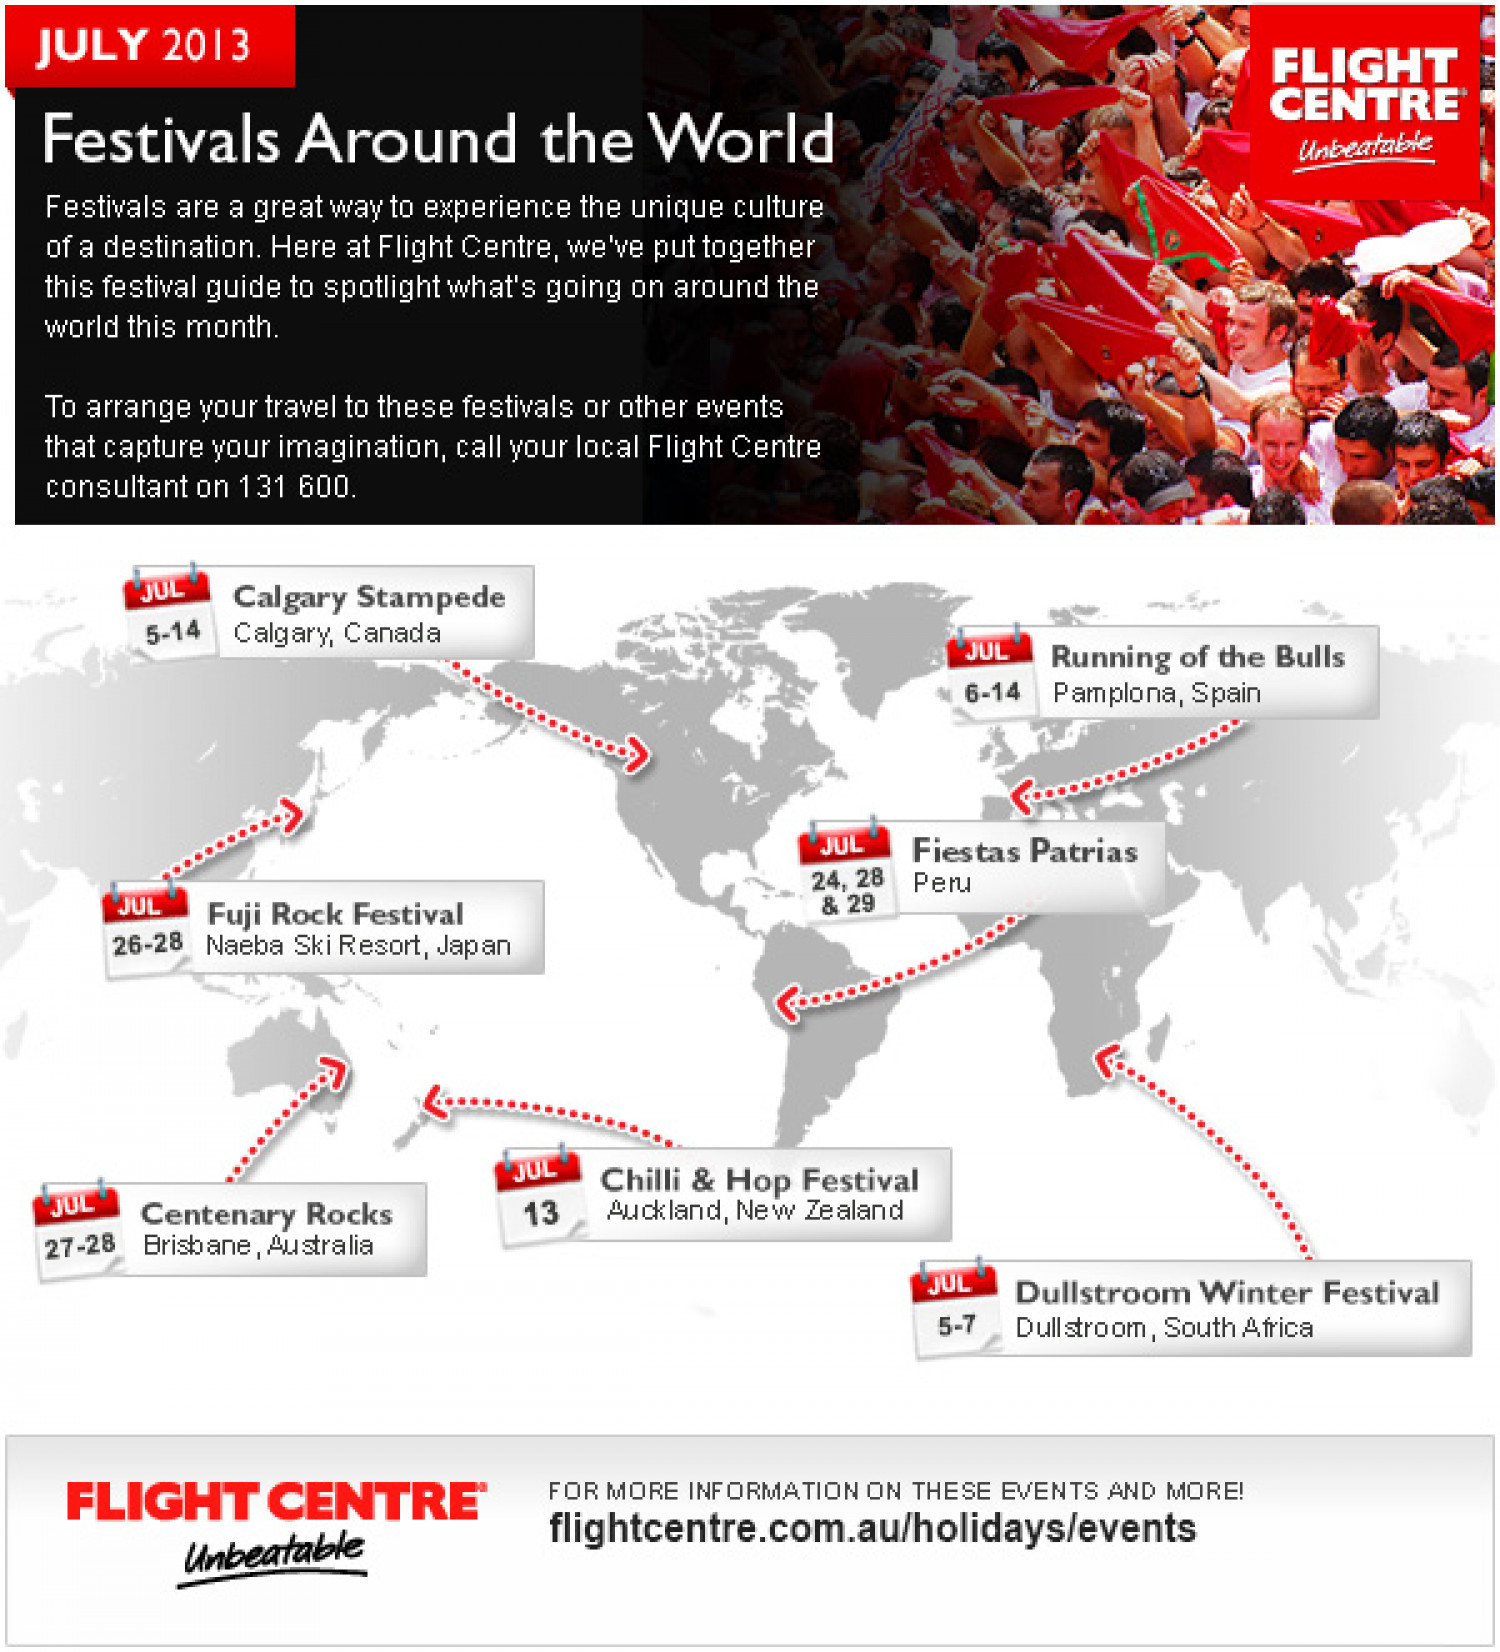 Festivals Around the World July 2013 Infographic